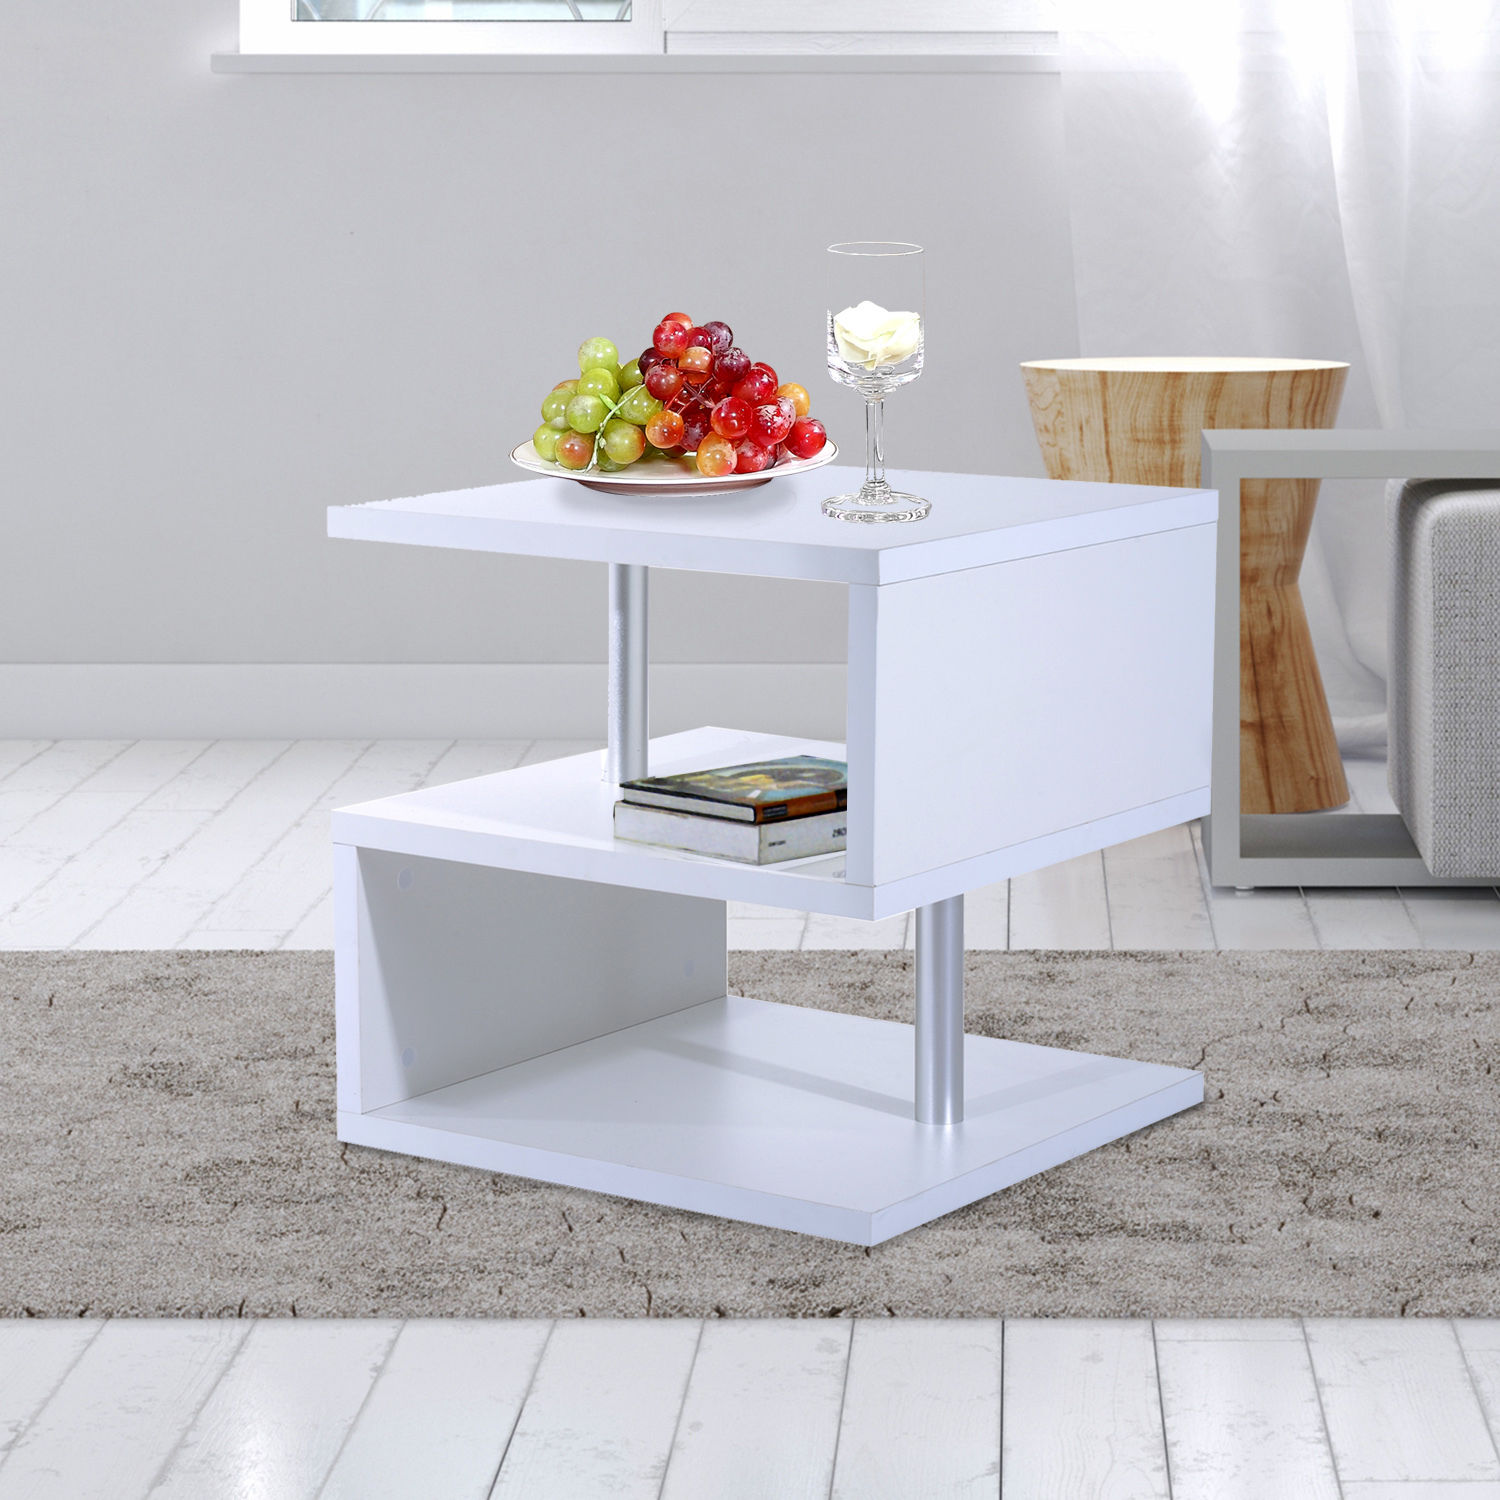 2 Tier Side End Coffee Table Storage Shelves Sofa Couch Living Room ...